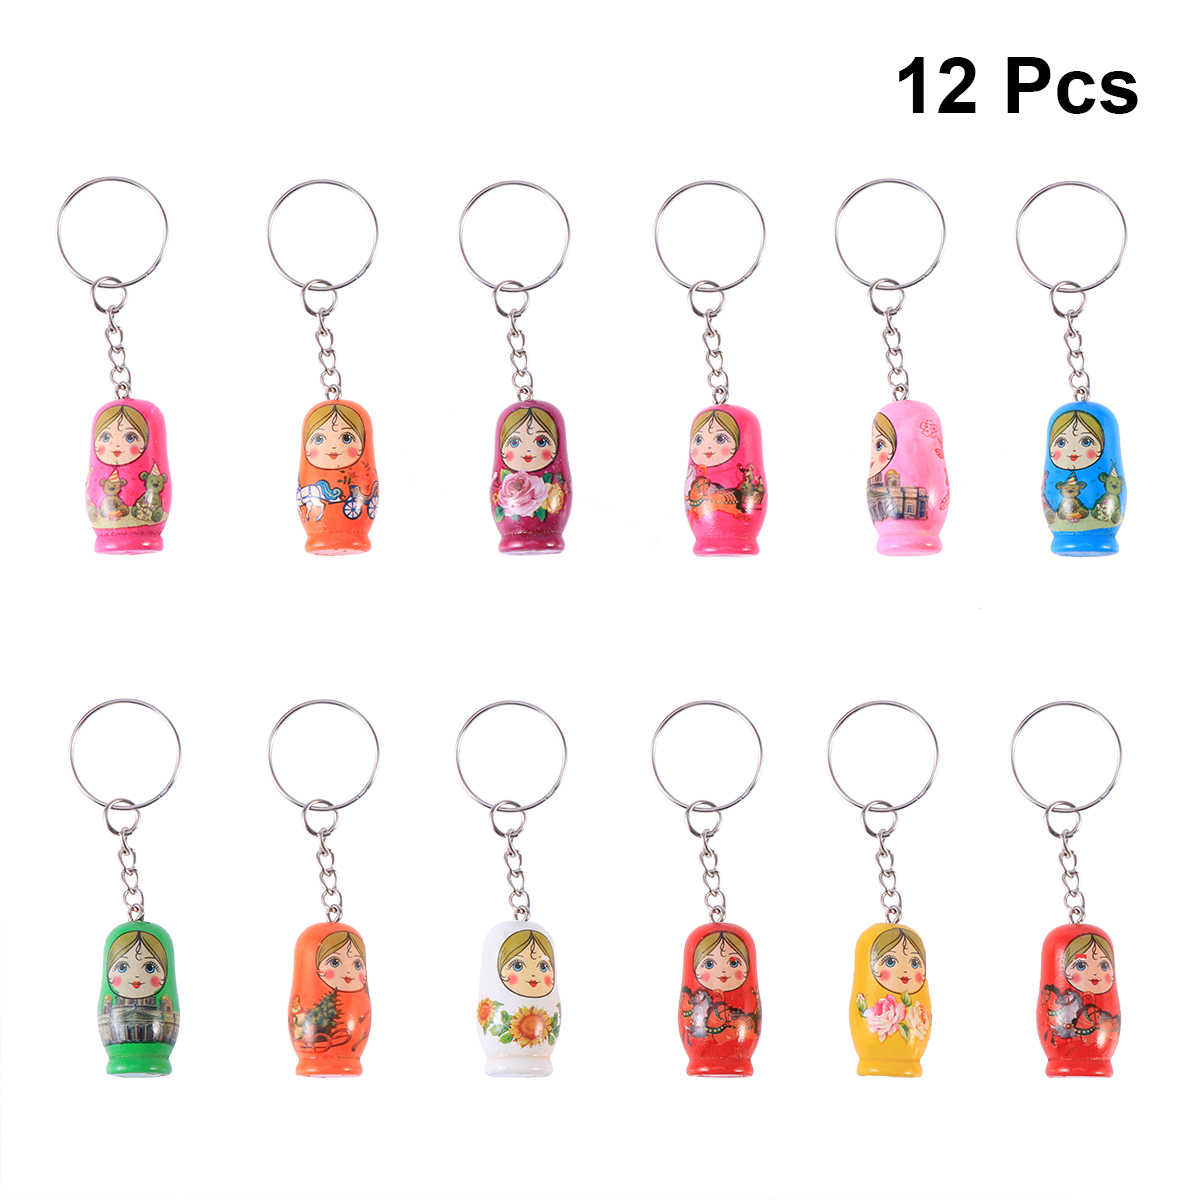 12pcs Russian Dolls Toy In Sale Wholsesale Wooden Doll Keychain Phone Babushka Matryoshka Hand Painted